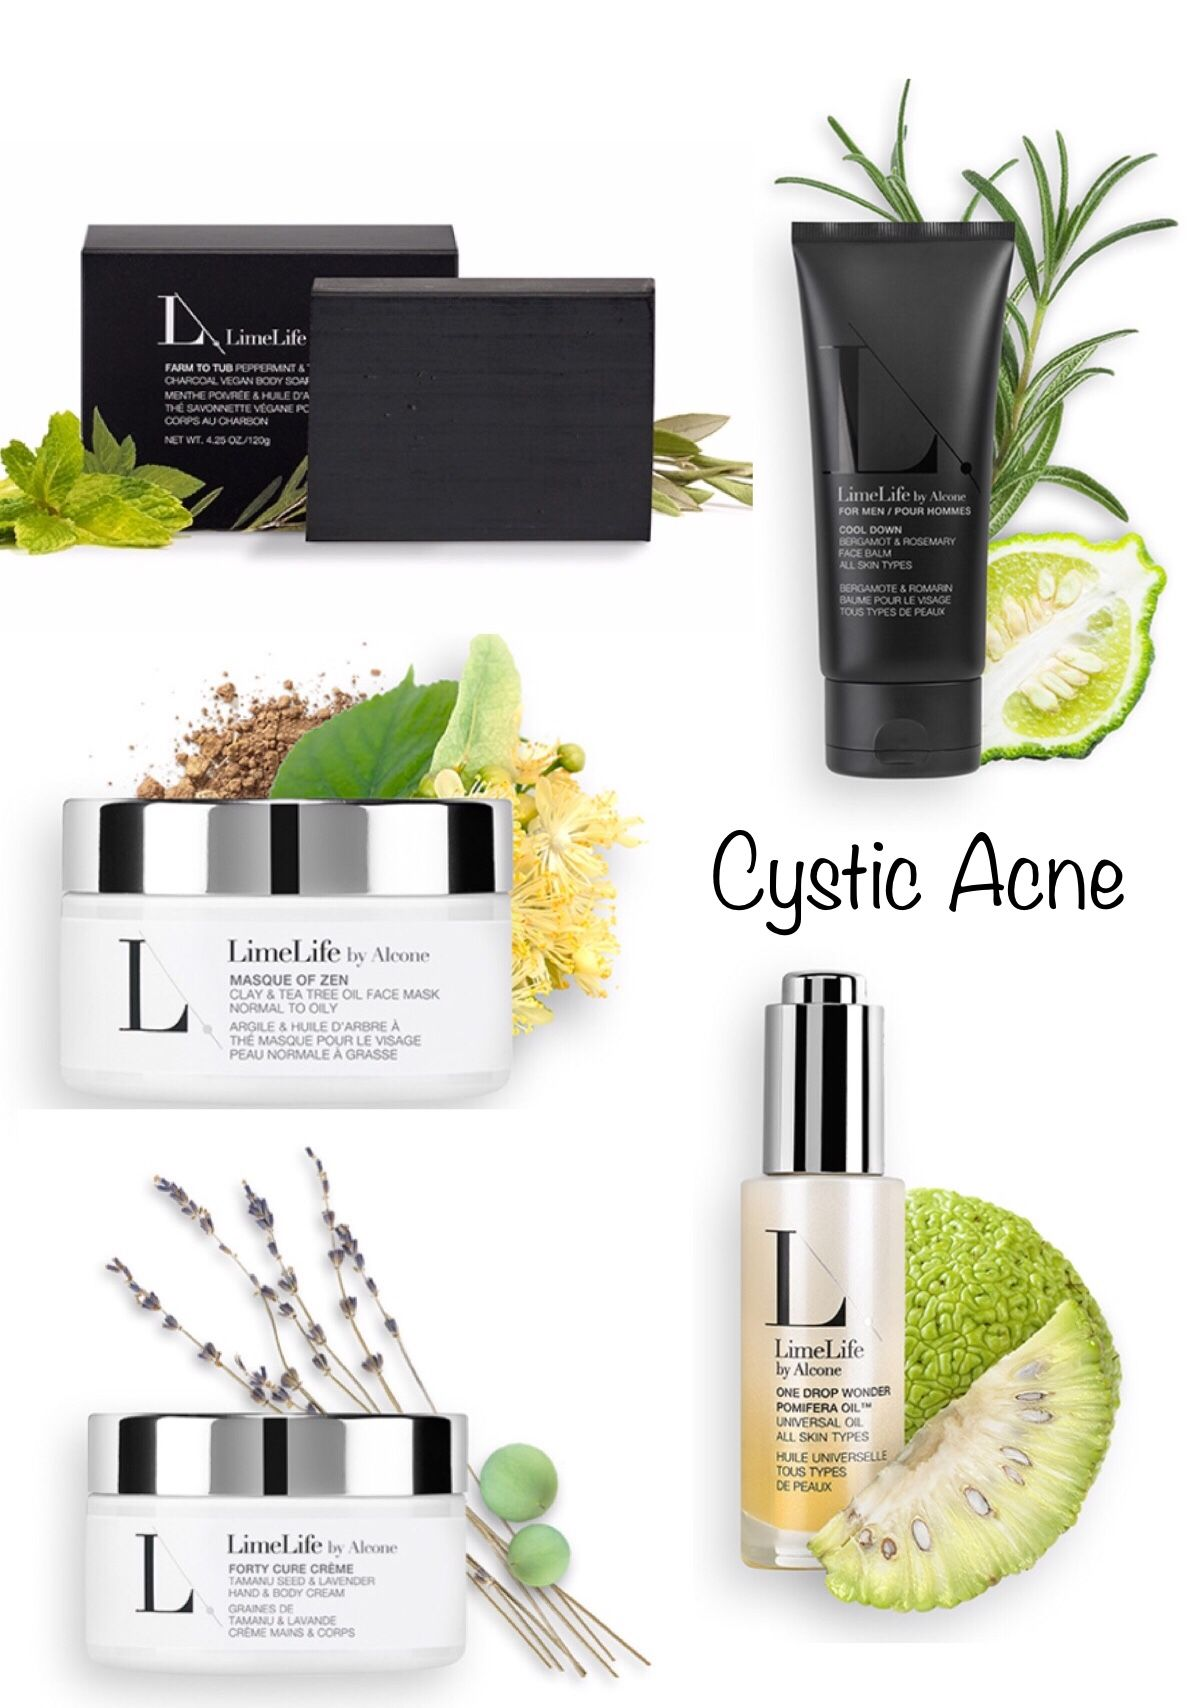 Cystic Acne In 2020 Cystic Acne Effective Skin Care Products Alcone Makeup